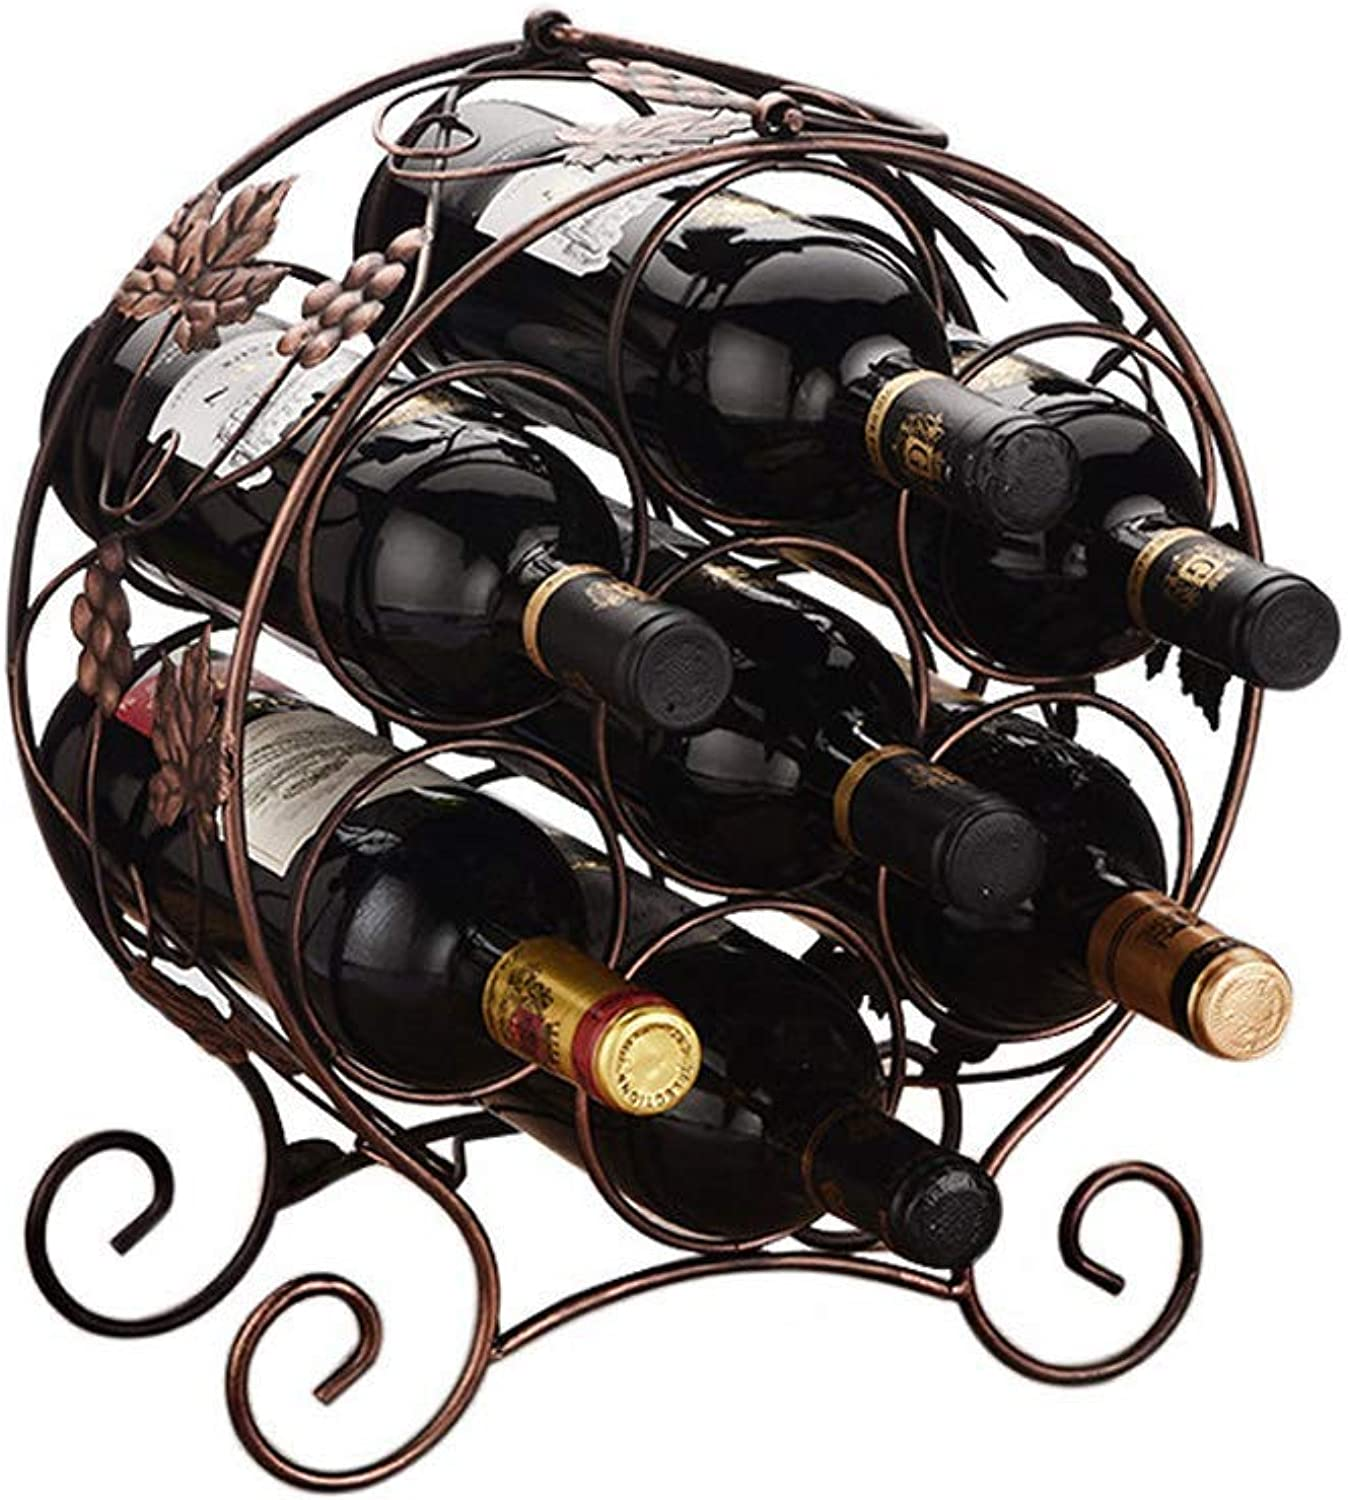 Wine Bottle Holder Metal,Stainless Steel Wine Holder,Stackable Metal Wine Racks,Free Standing, Horizontal, greenical (color   -, Size   -)